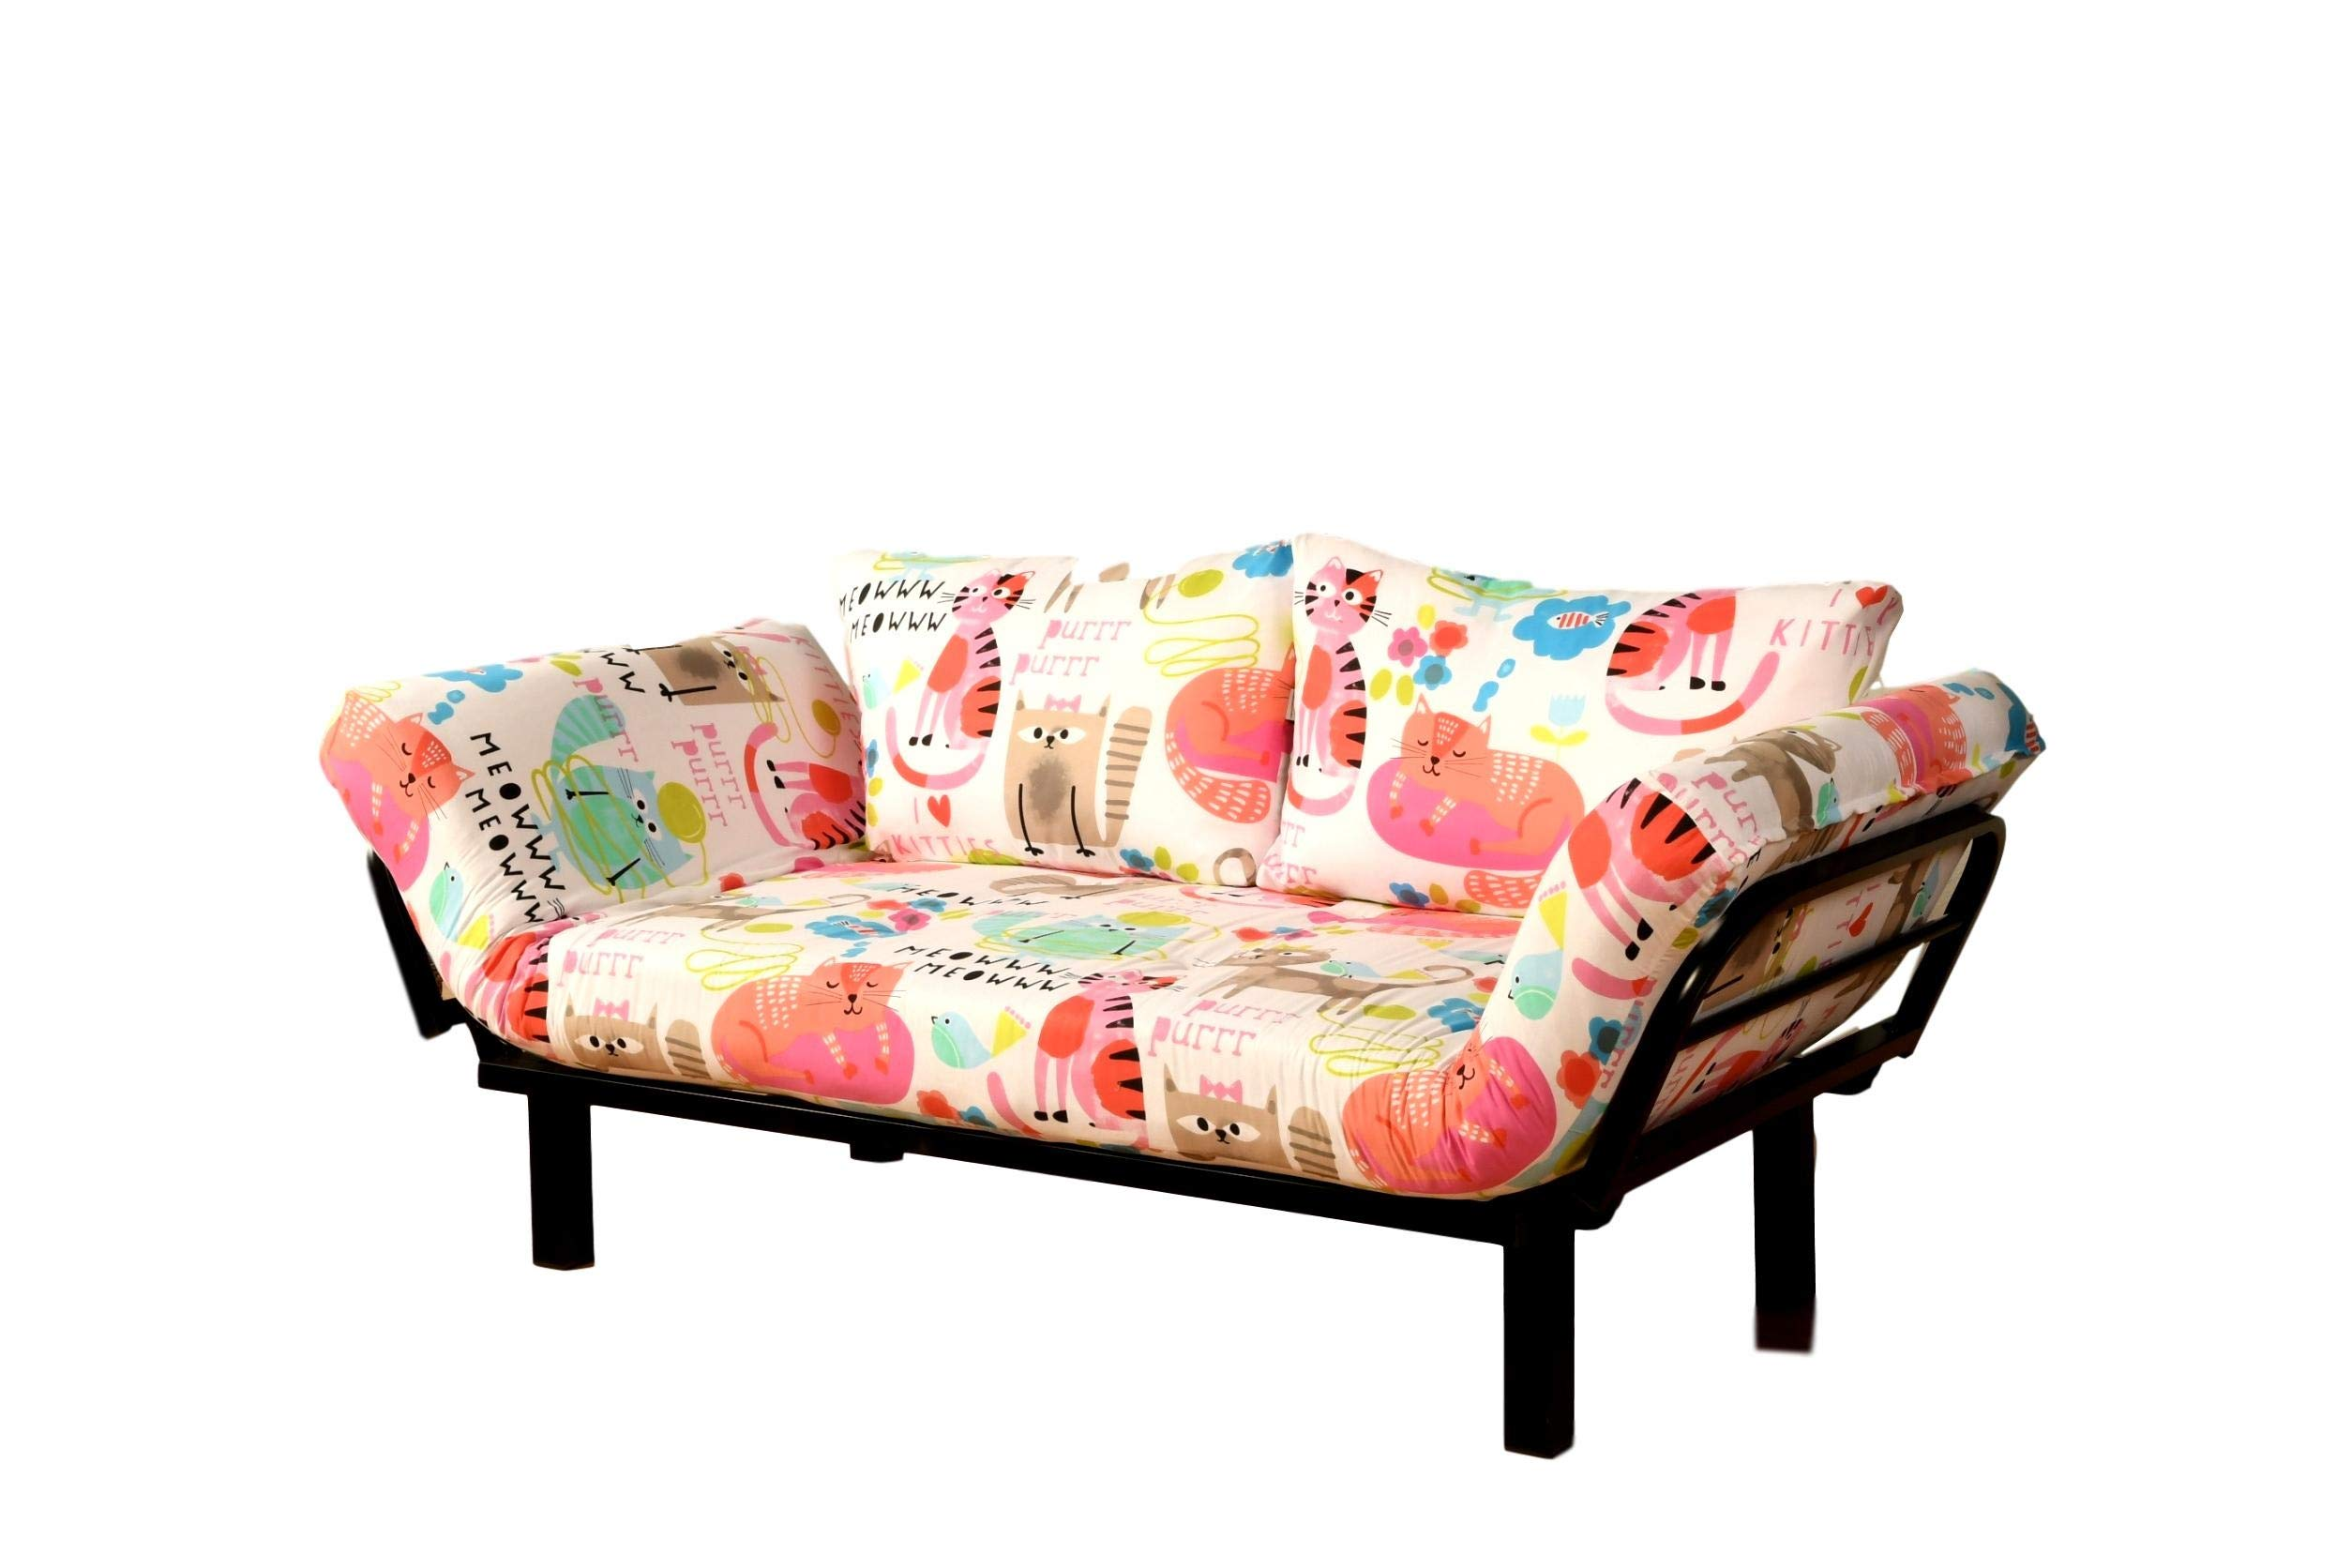 Best Futon Lounger Sit Lounge Sleep Smaller Size Furniture is Perfect for College Dorm Bedroom Studio Apartment Guest Room Covered Patio Porch Key Kitty Key Chain Included (PurrtyCat) by Kodiak